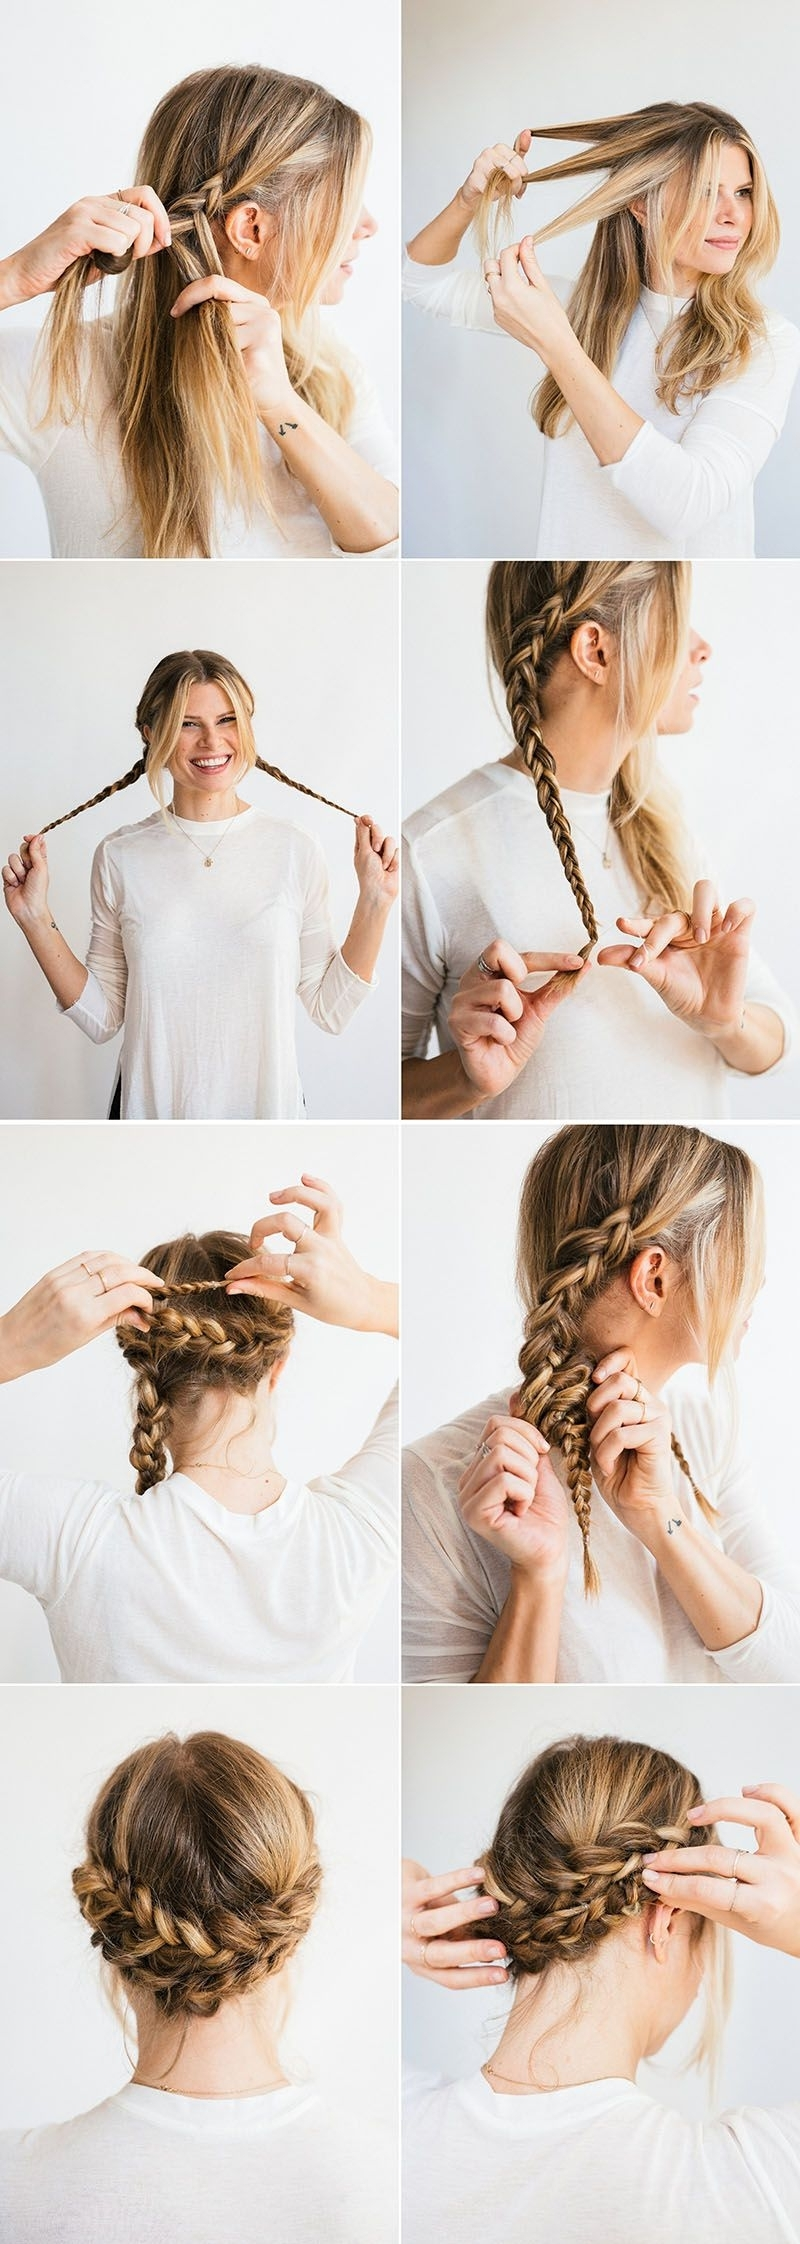 Horseshoe Braid | Simple Braids, Updo And Romantic With Regard To Easy Casual Updos For Long Hair (View 12 of 15)